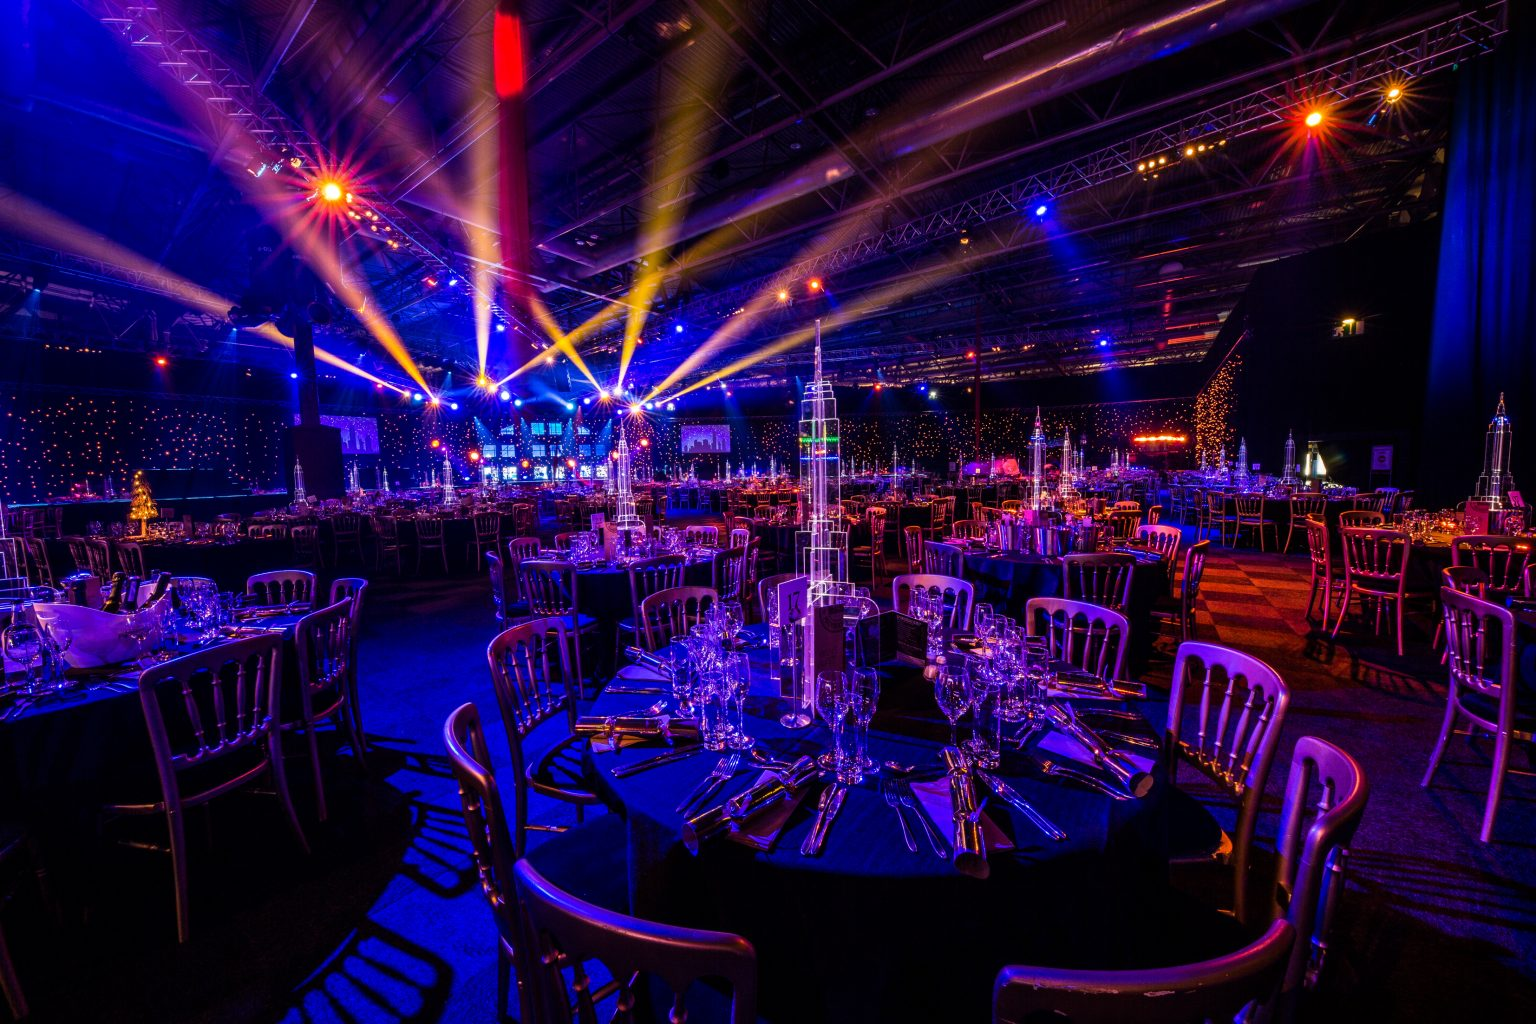 Christmas Party Themes.We Take A Look At Our 2019 Christmas Party Themes